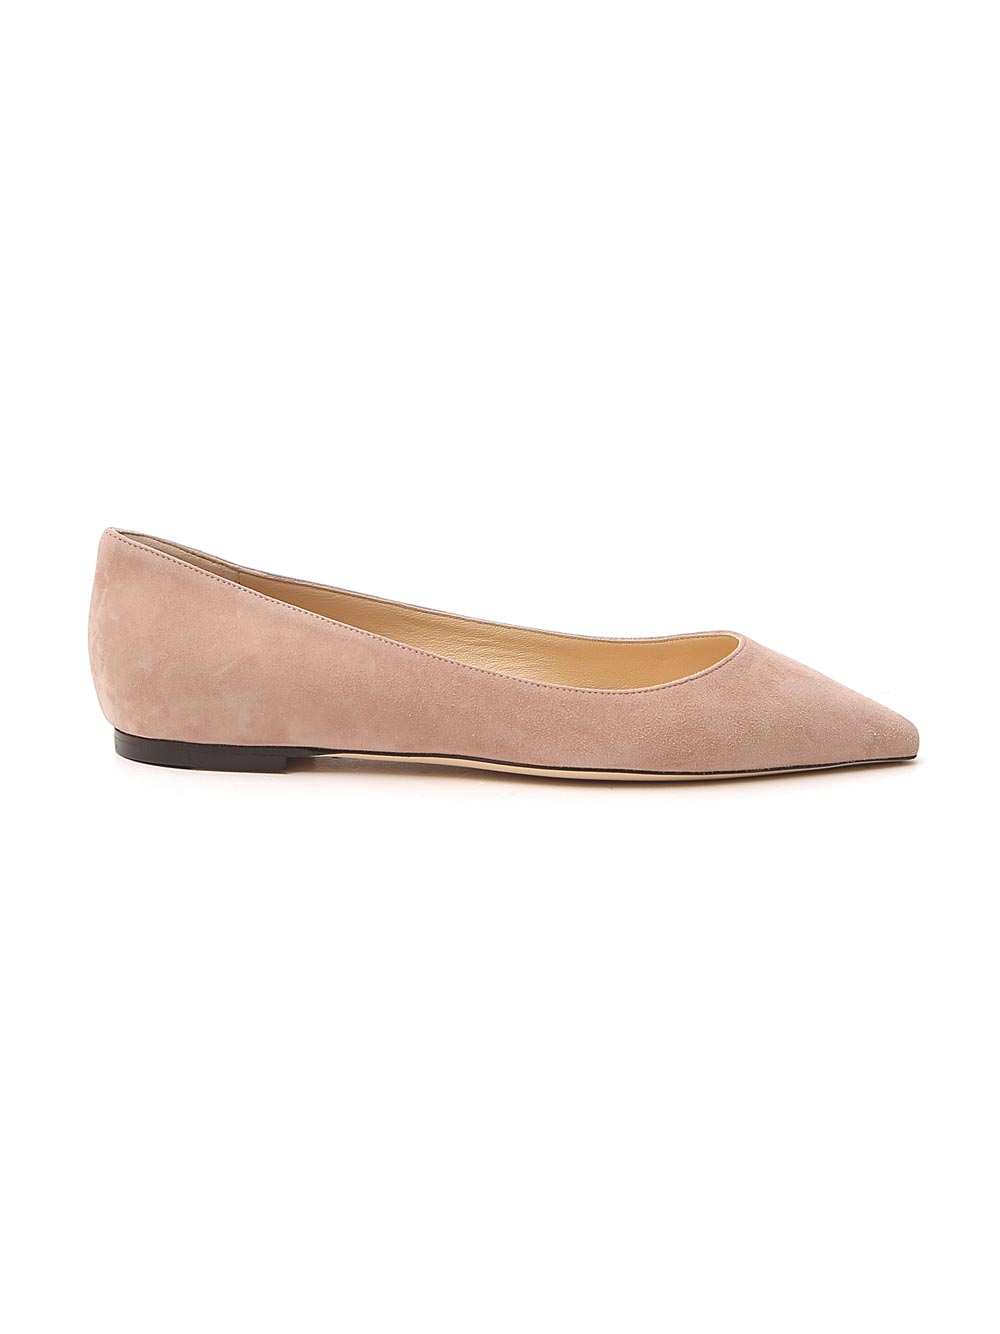 JIMMY CHOO JIMMY CHOO ROMY SUEDE FLAT SHOES